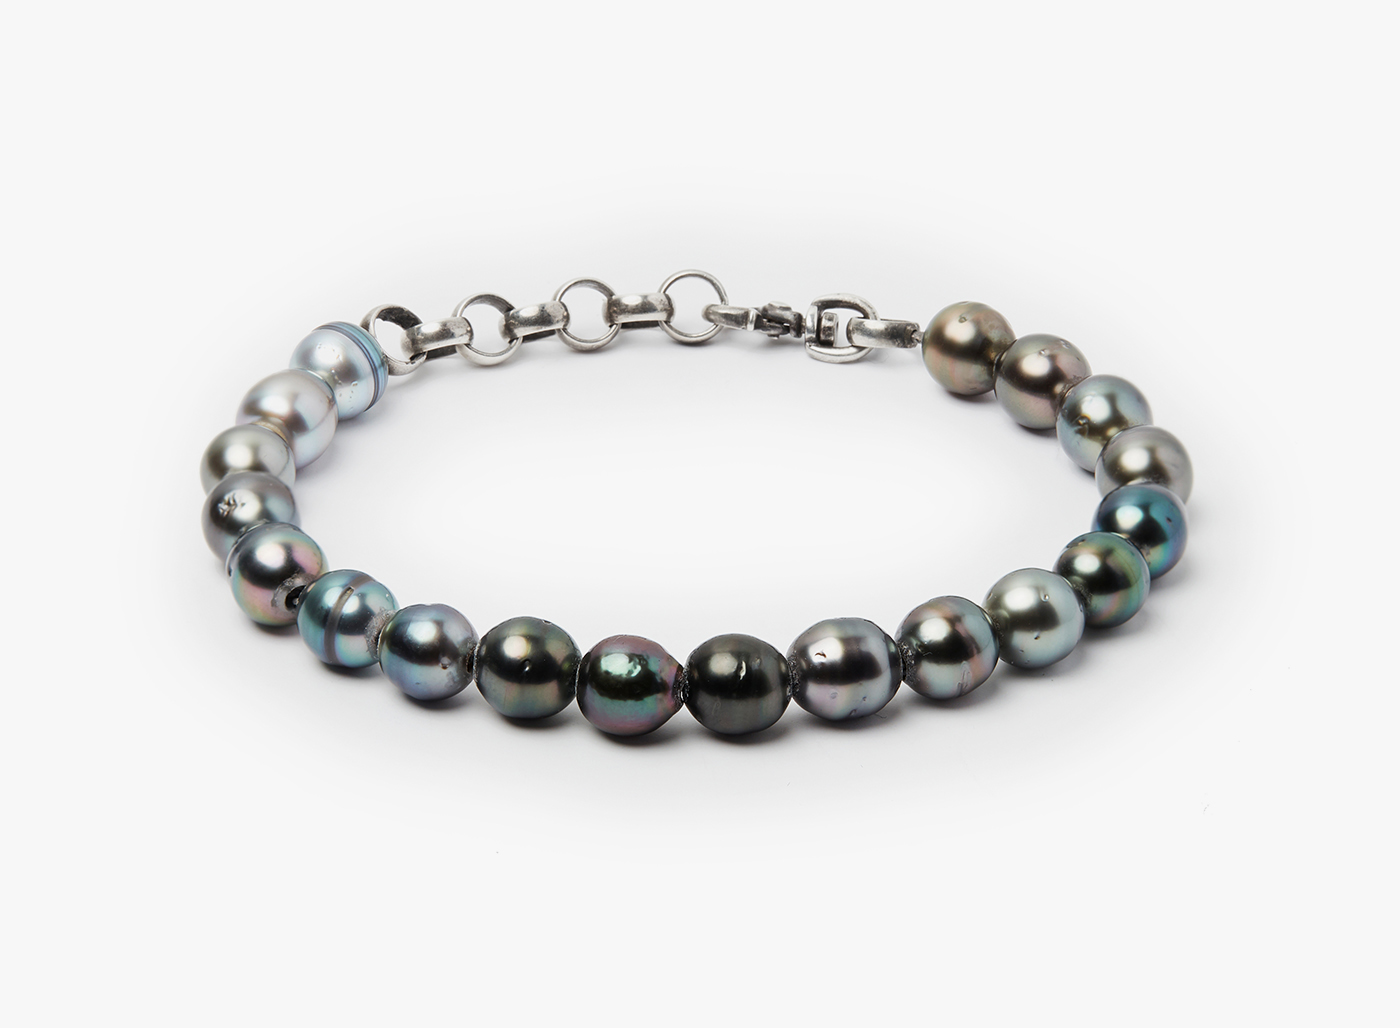 Image of 8mm Tahitian Pearls on Curb Chain Bracelet